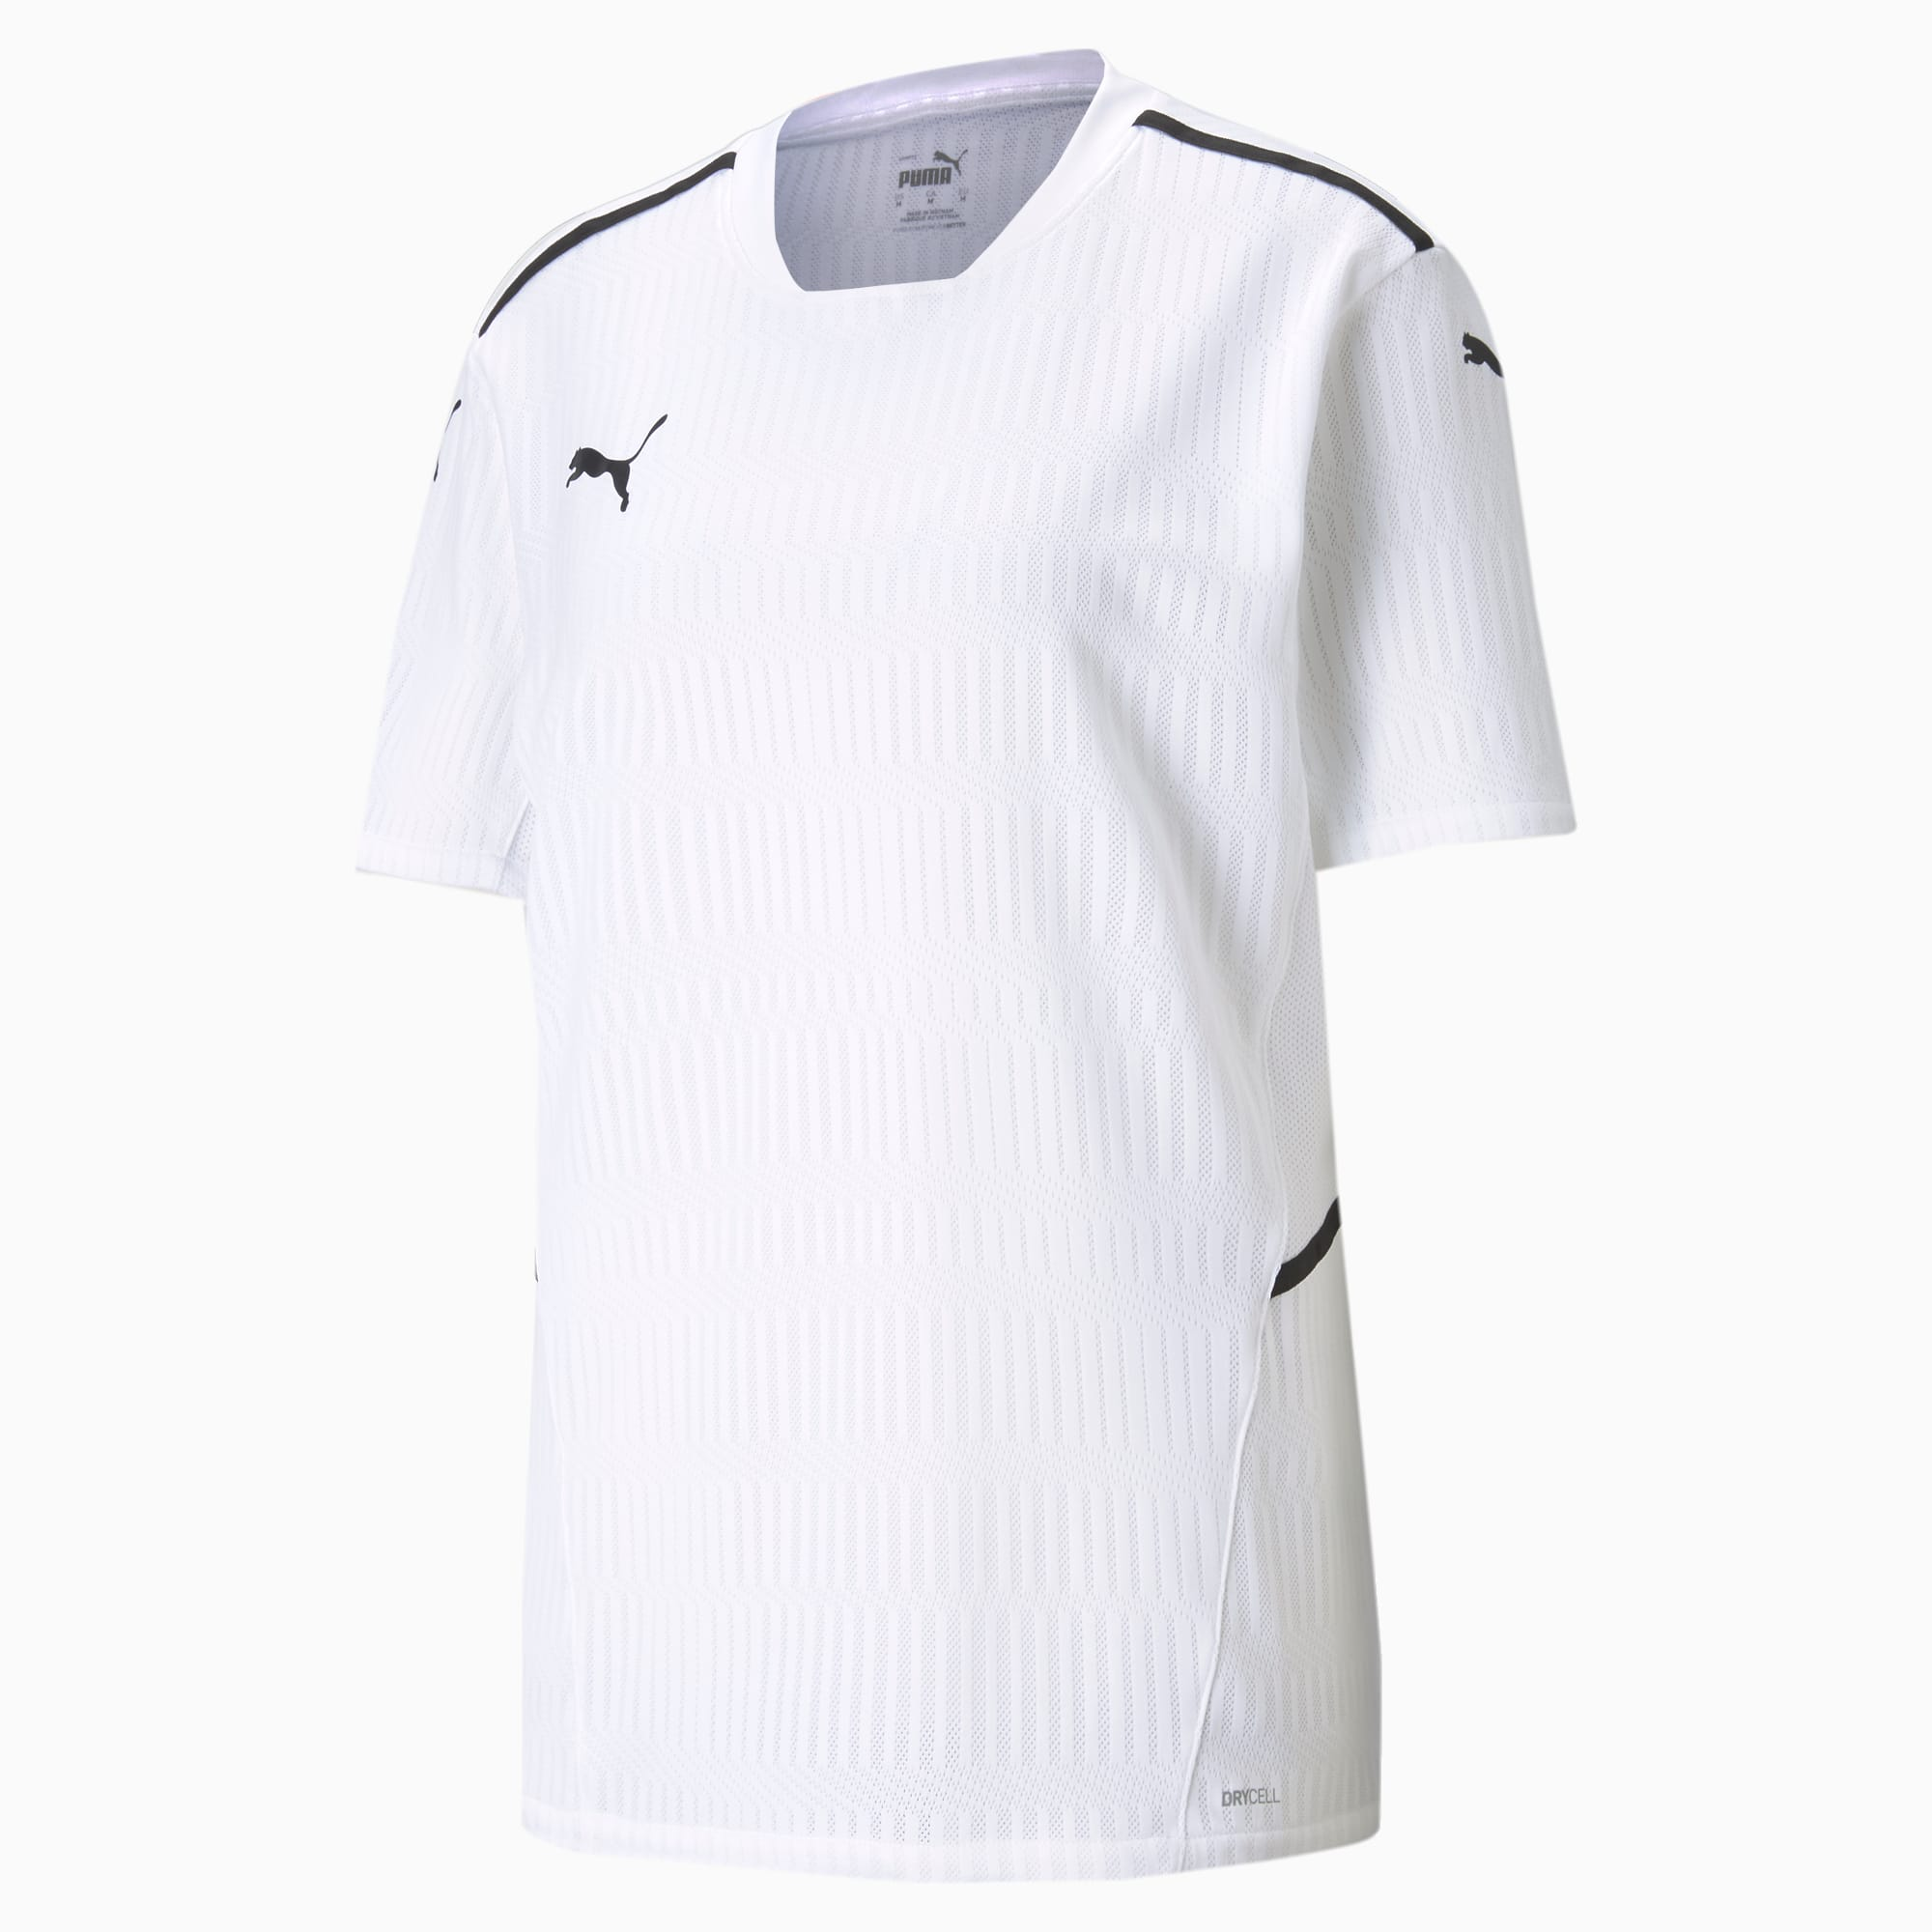 teamCUP Men's Football Relaxed Jersey